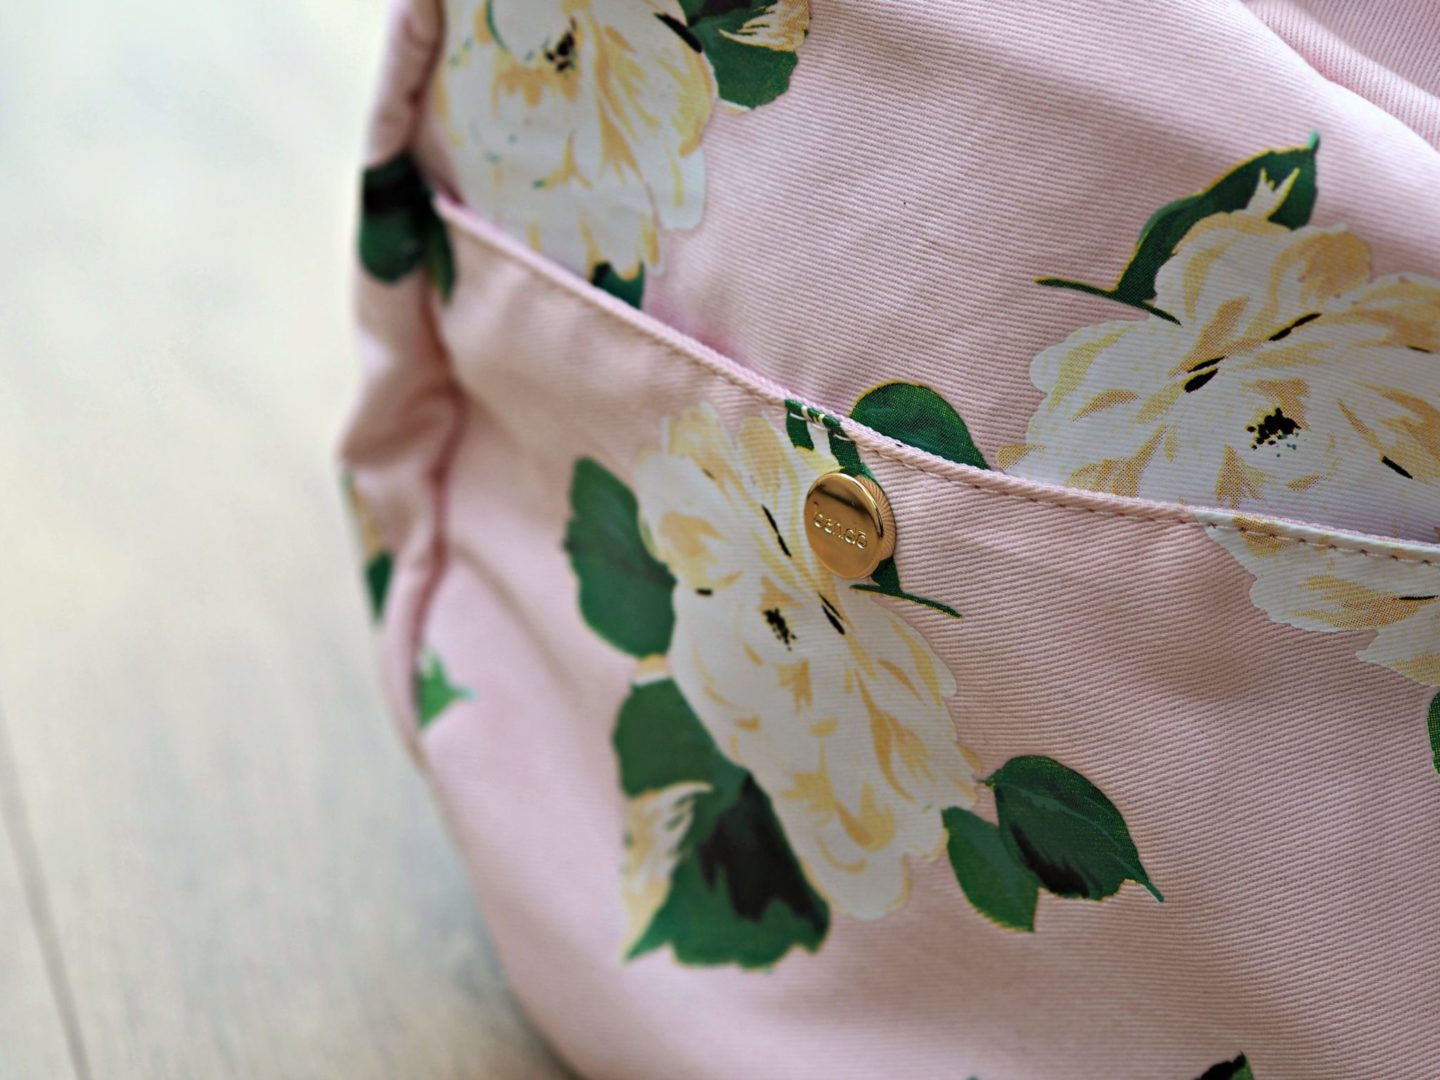 Rooi Ban.Do Lady of Leisure Floral Gym Bag Close Up